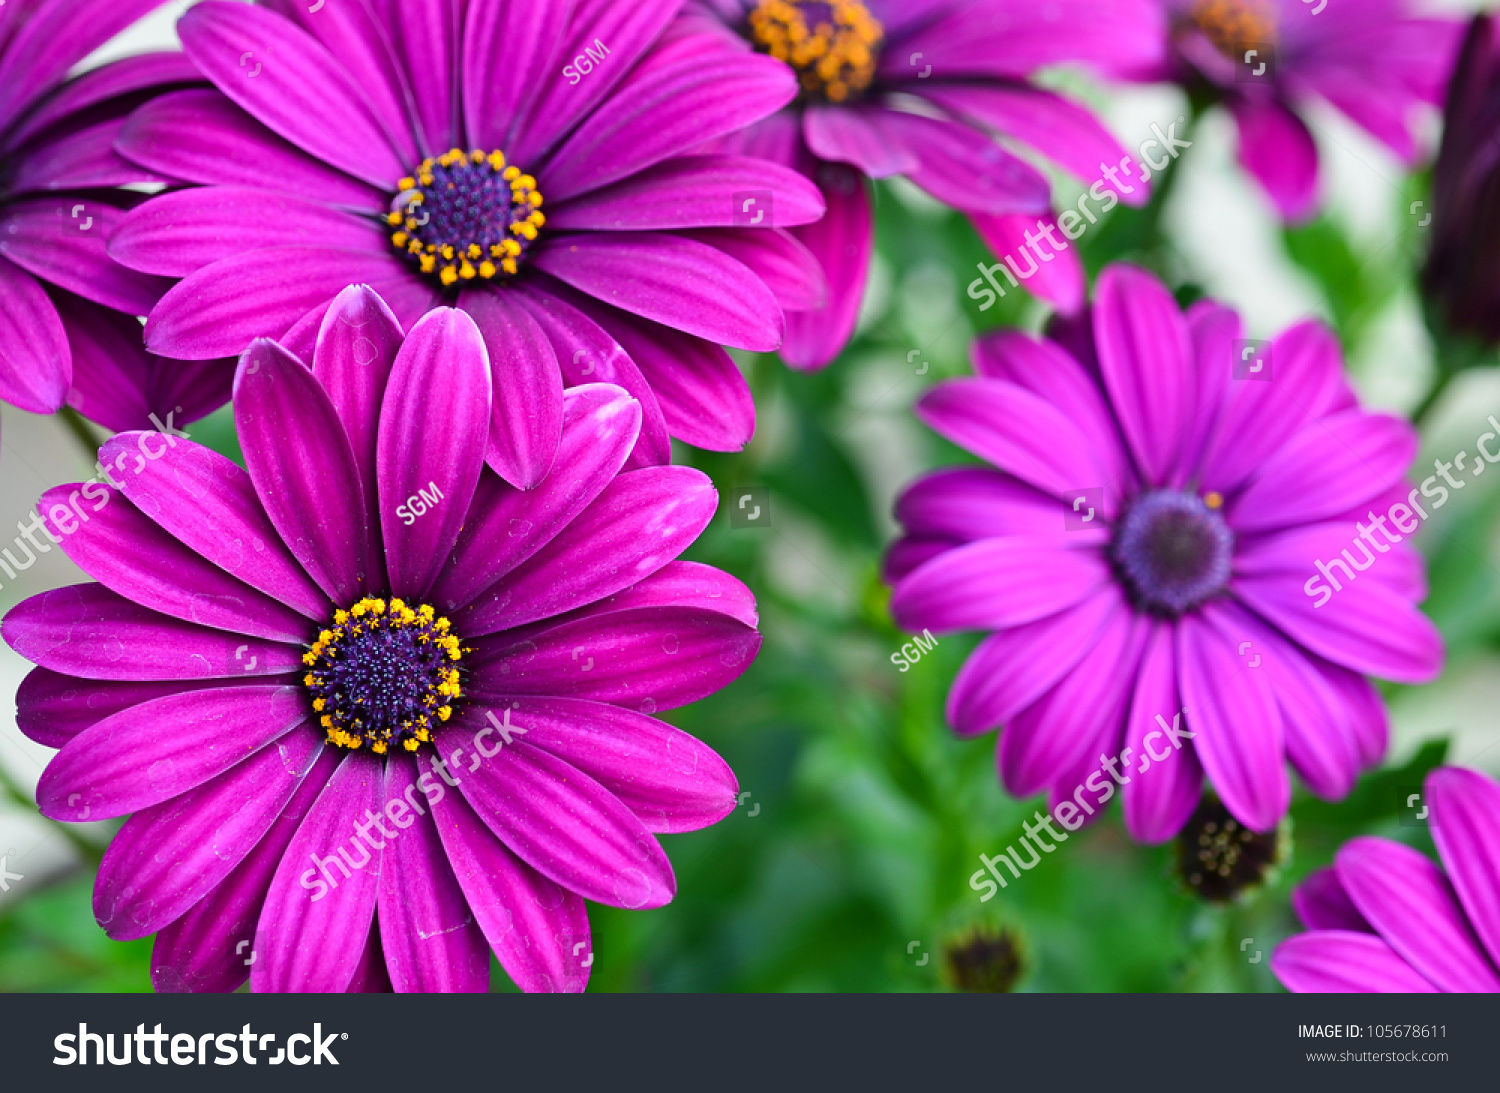 Purple daisy flowers osteospermum stock photo edit now 105678611 purple daisy flowers osteospermum izmirmasajfo